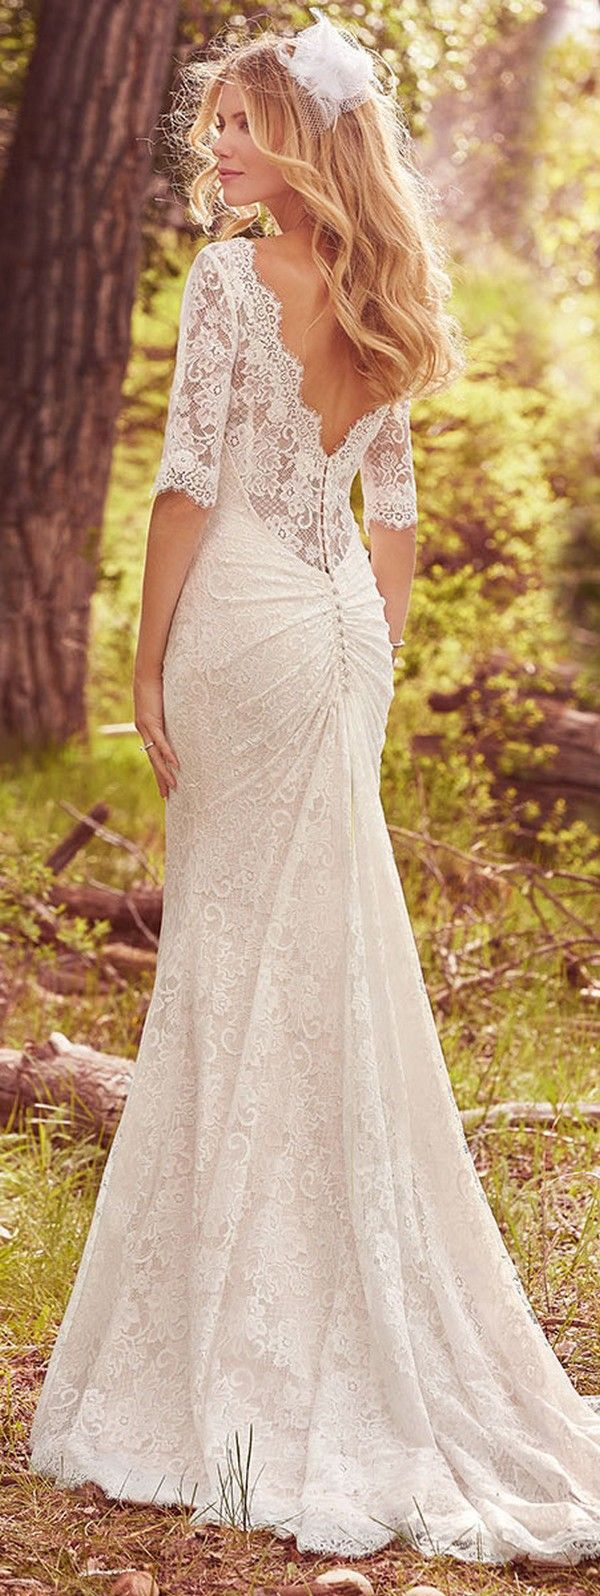 Top 20 Vintage Wedding Dresses for 2017 Trends | Wedding ...